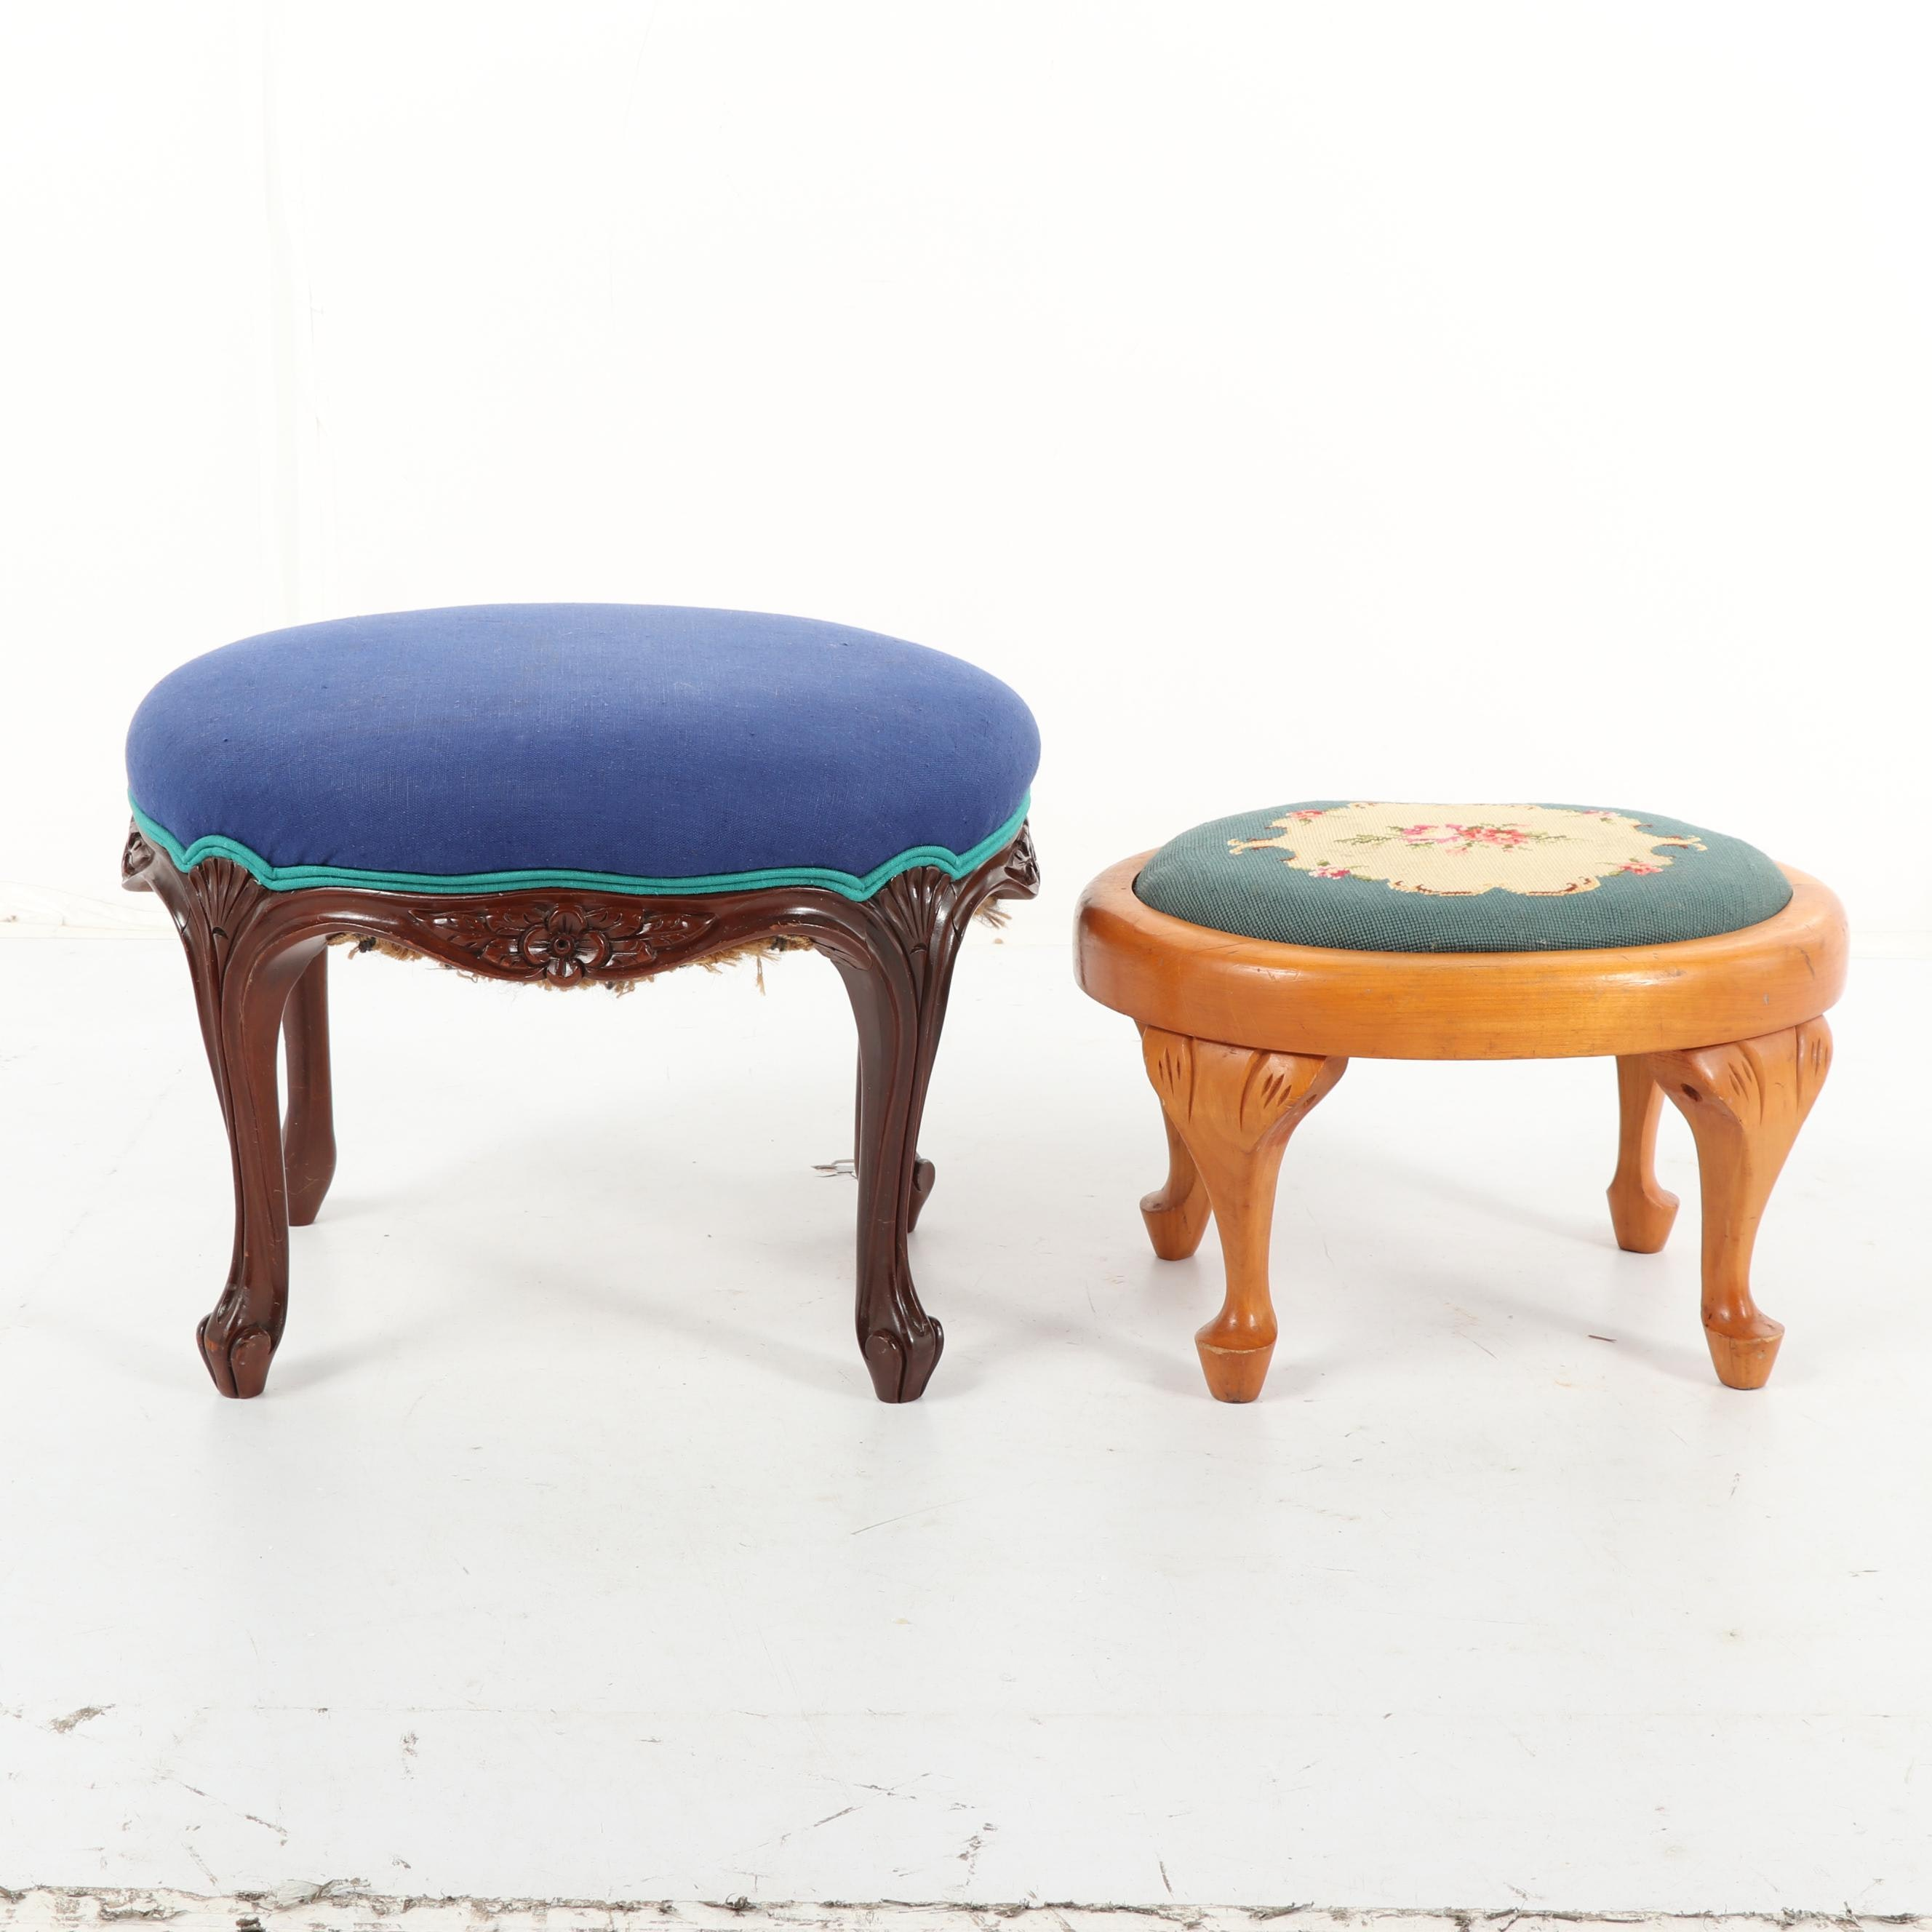 Victorian Wood Footstools, Early 20th Century